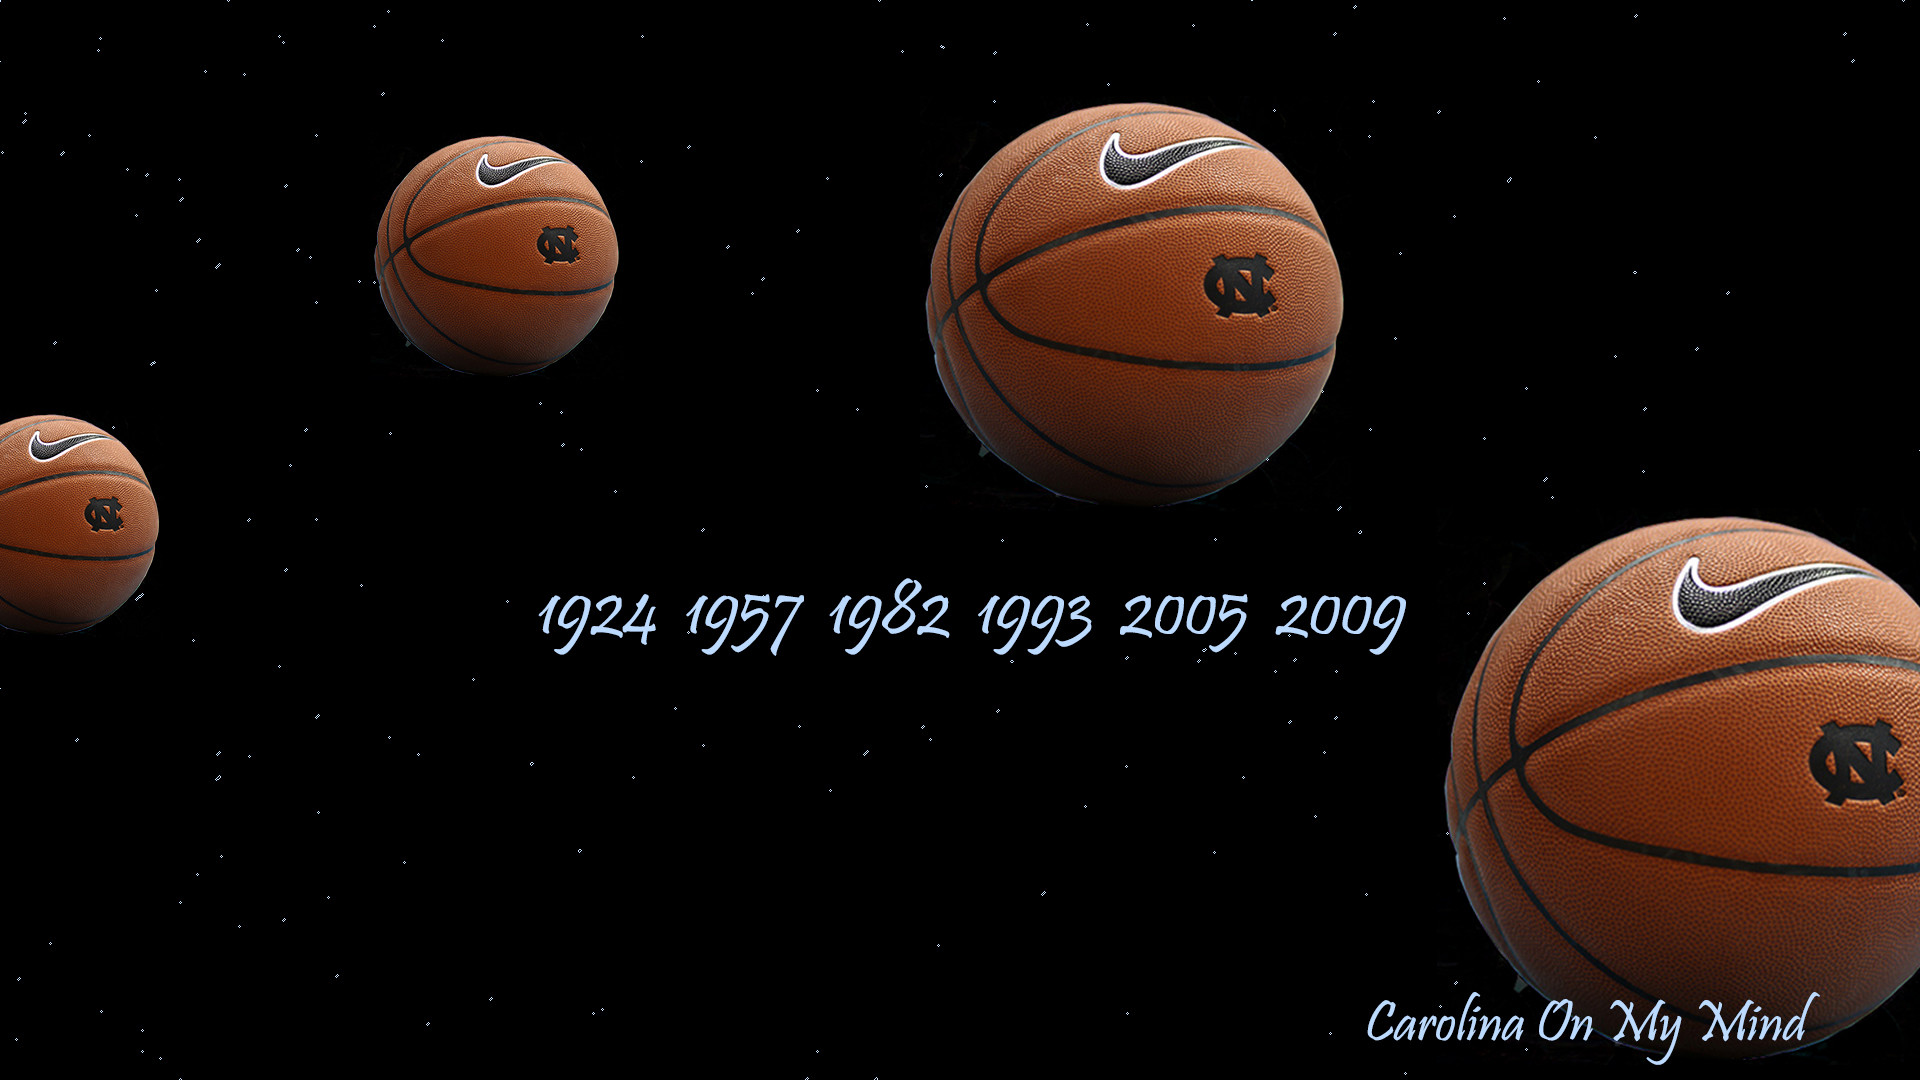 1920x1080 UNC Desktop Wallpaper - Basketballs in Dark Sky